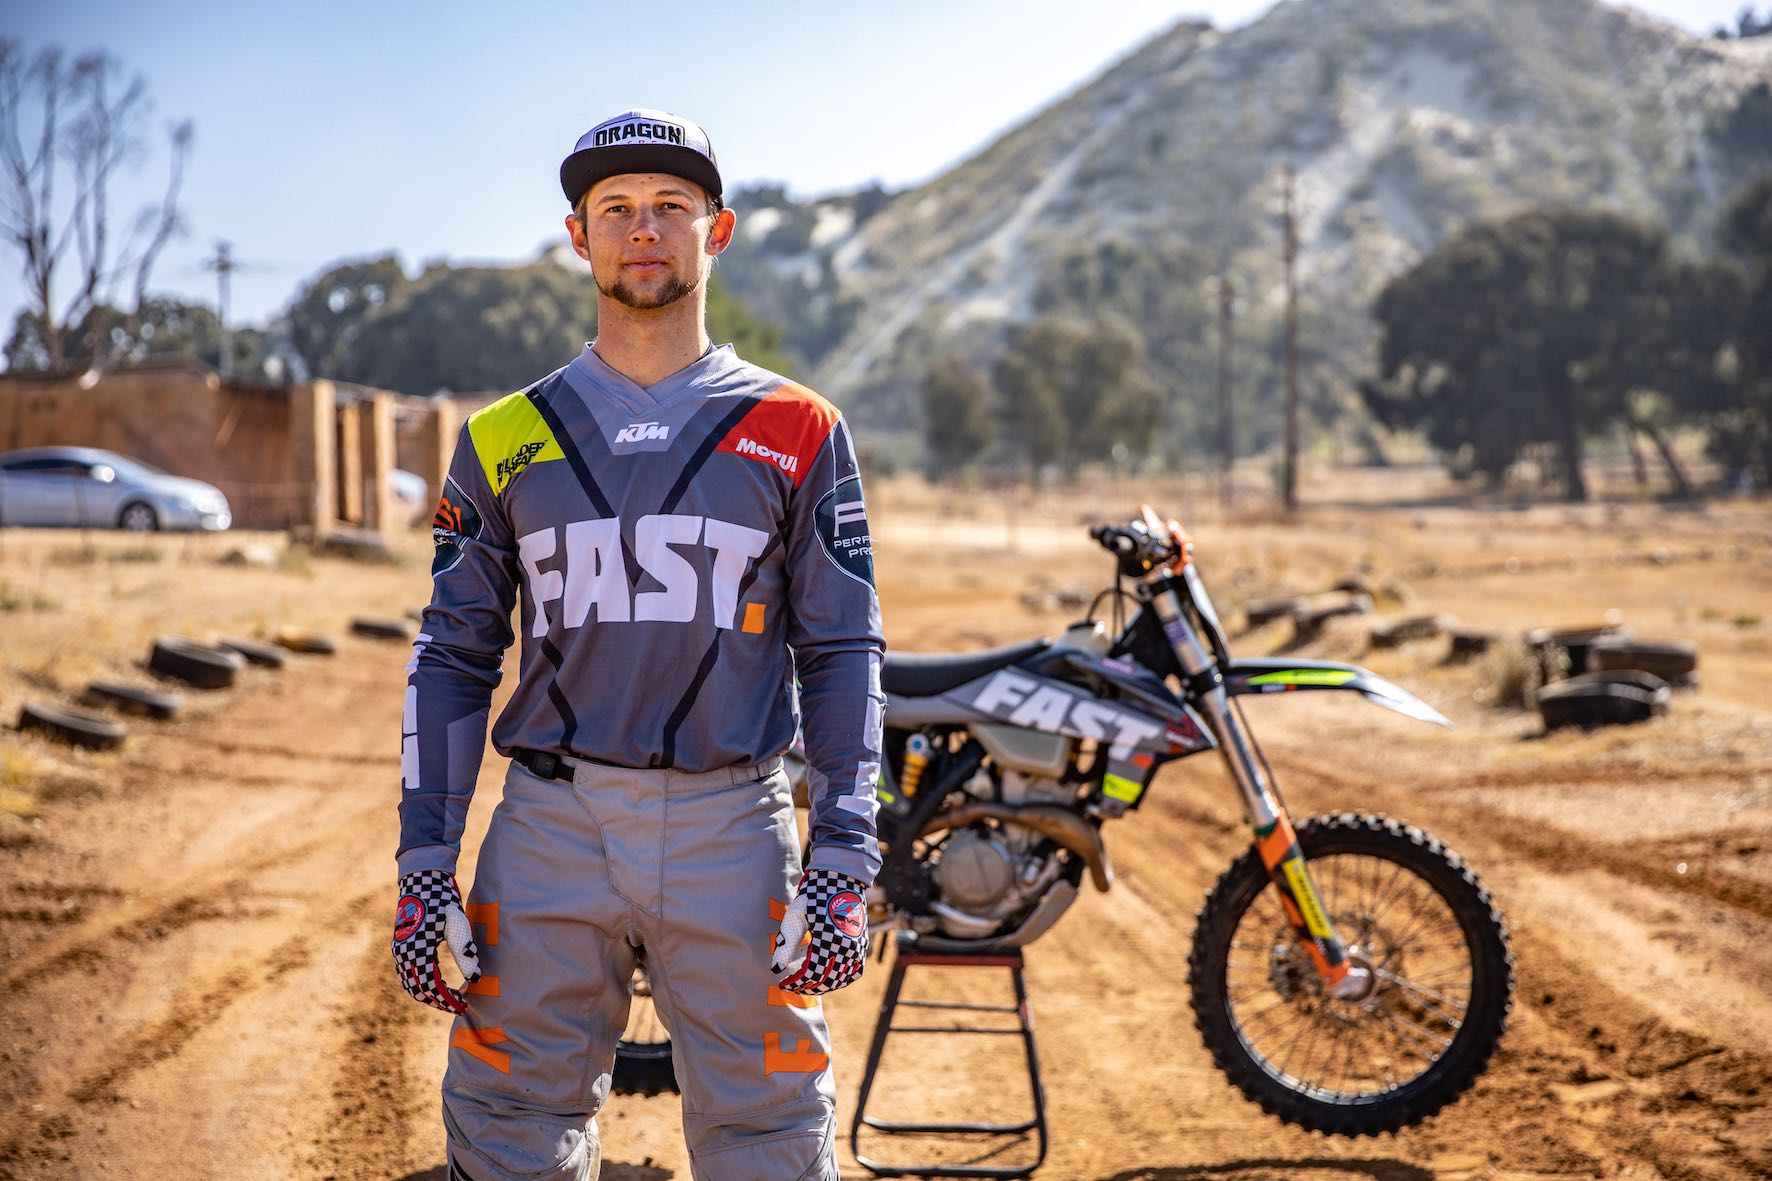 Interview with Ian Rall about dirt bike racing